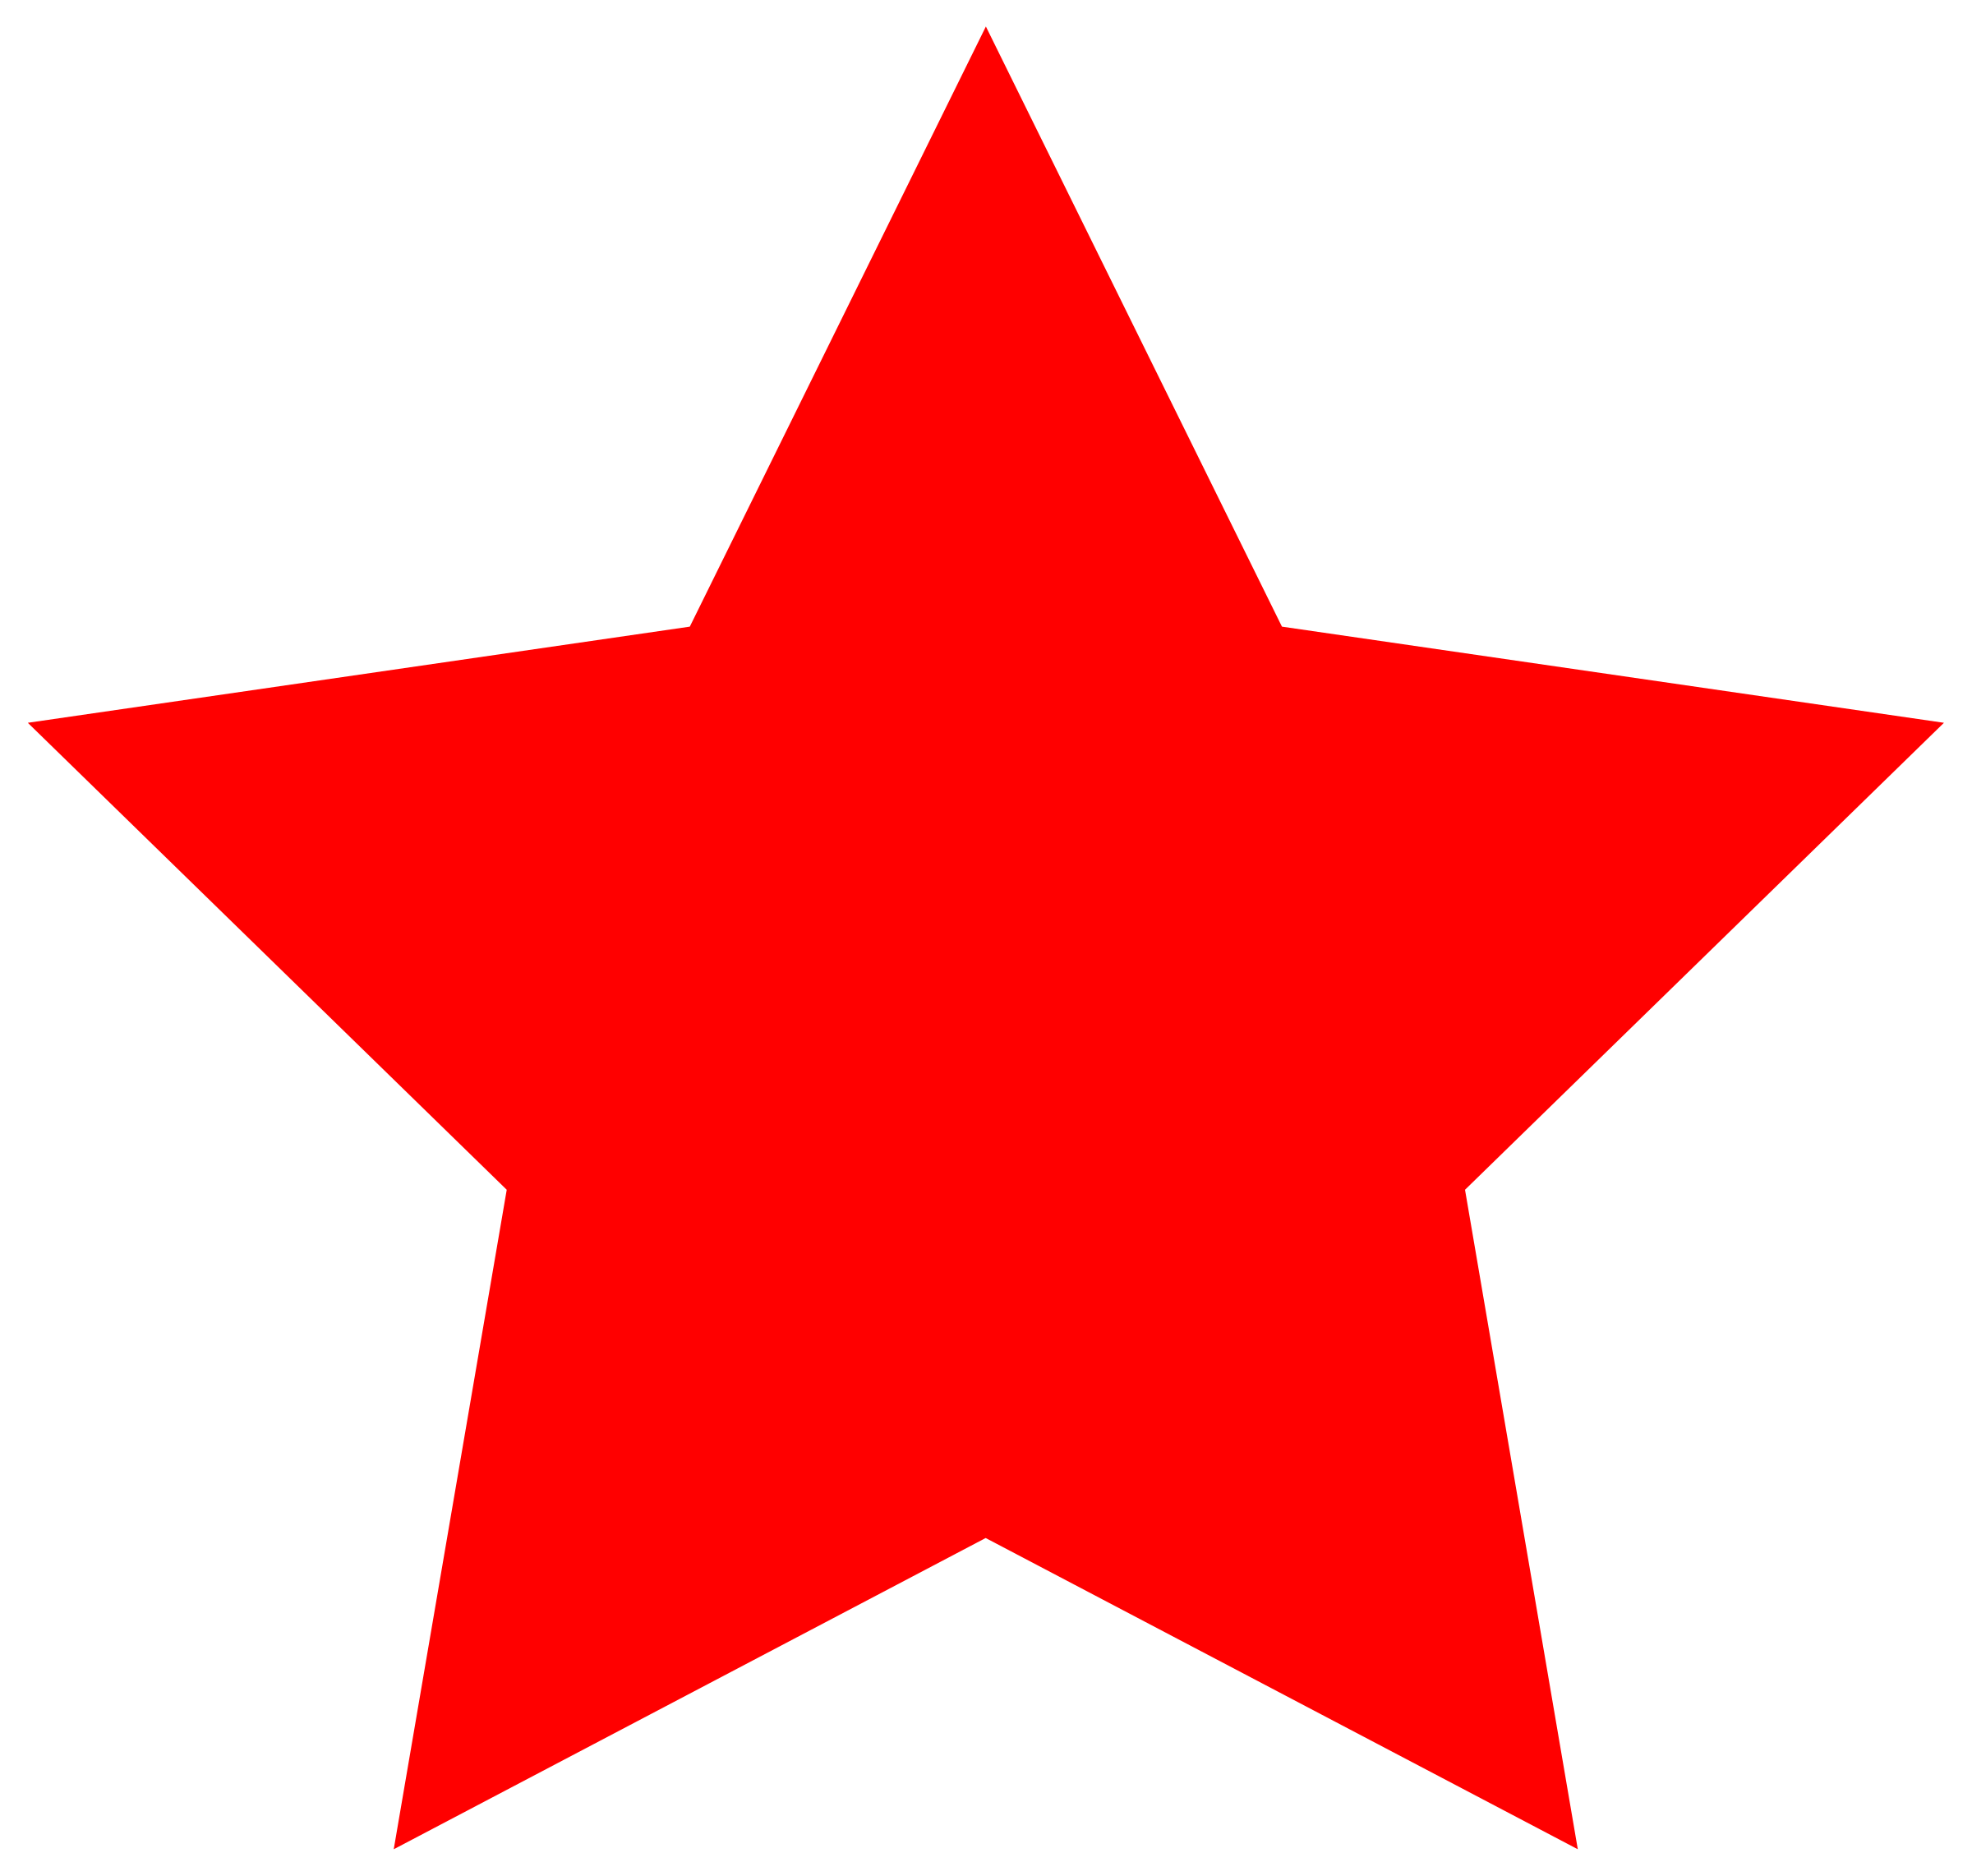 Simple star clipart graphic download Clipart - simple red star graphic download